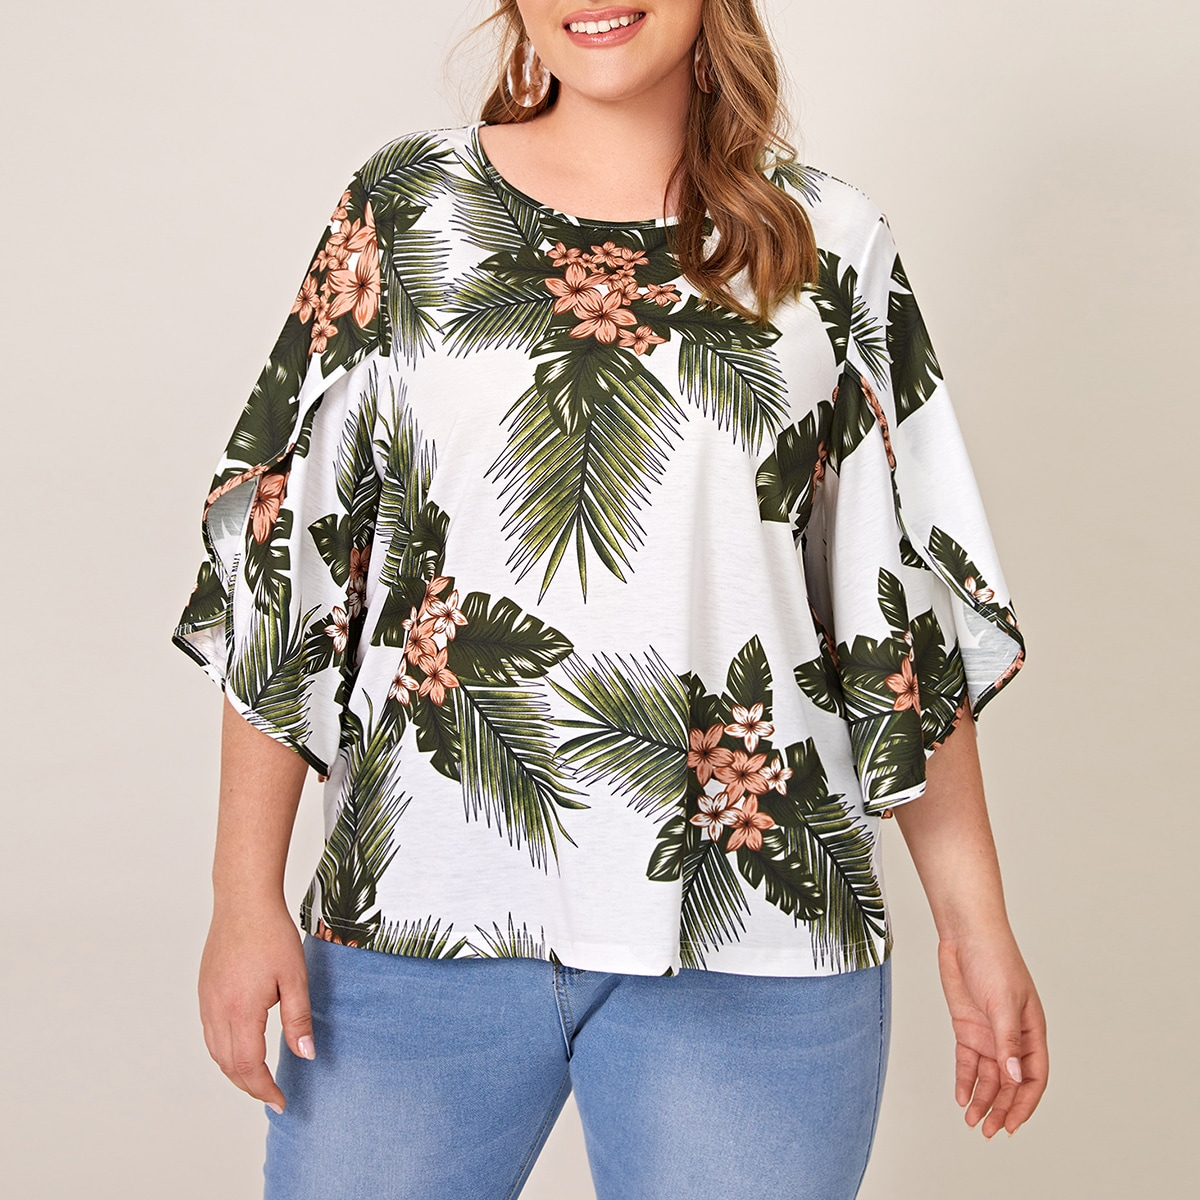 Plus Floral & Tropical Print Blouse, SHEIN  - buy with discount